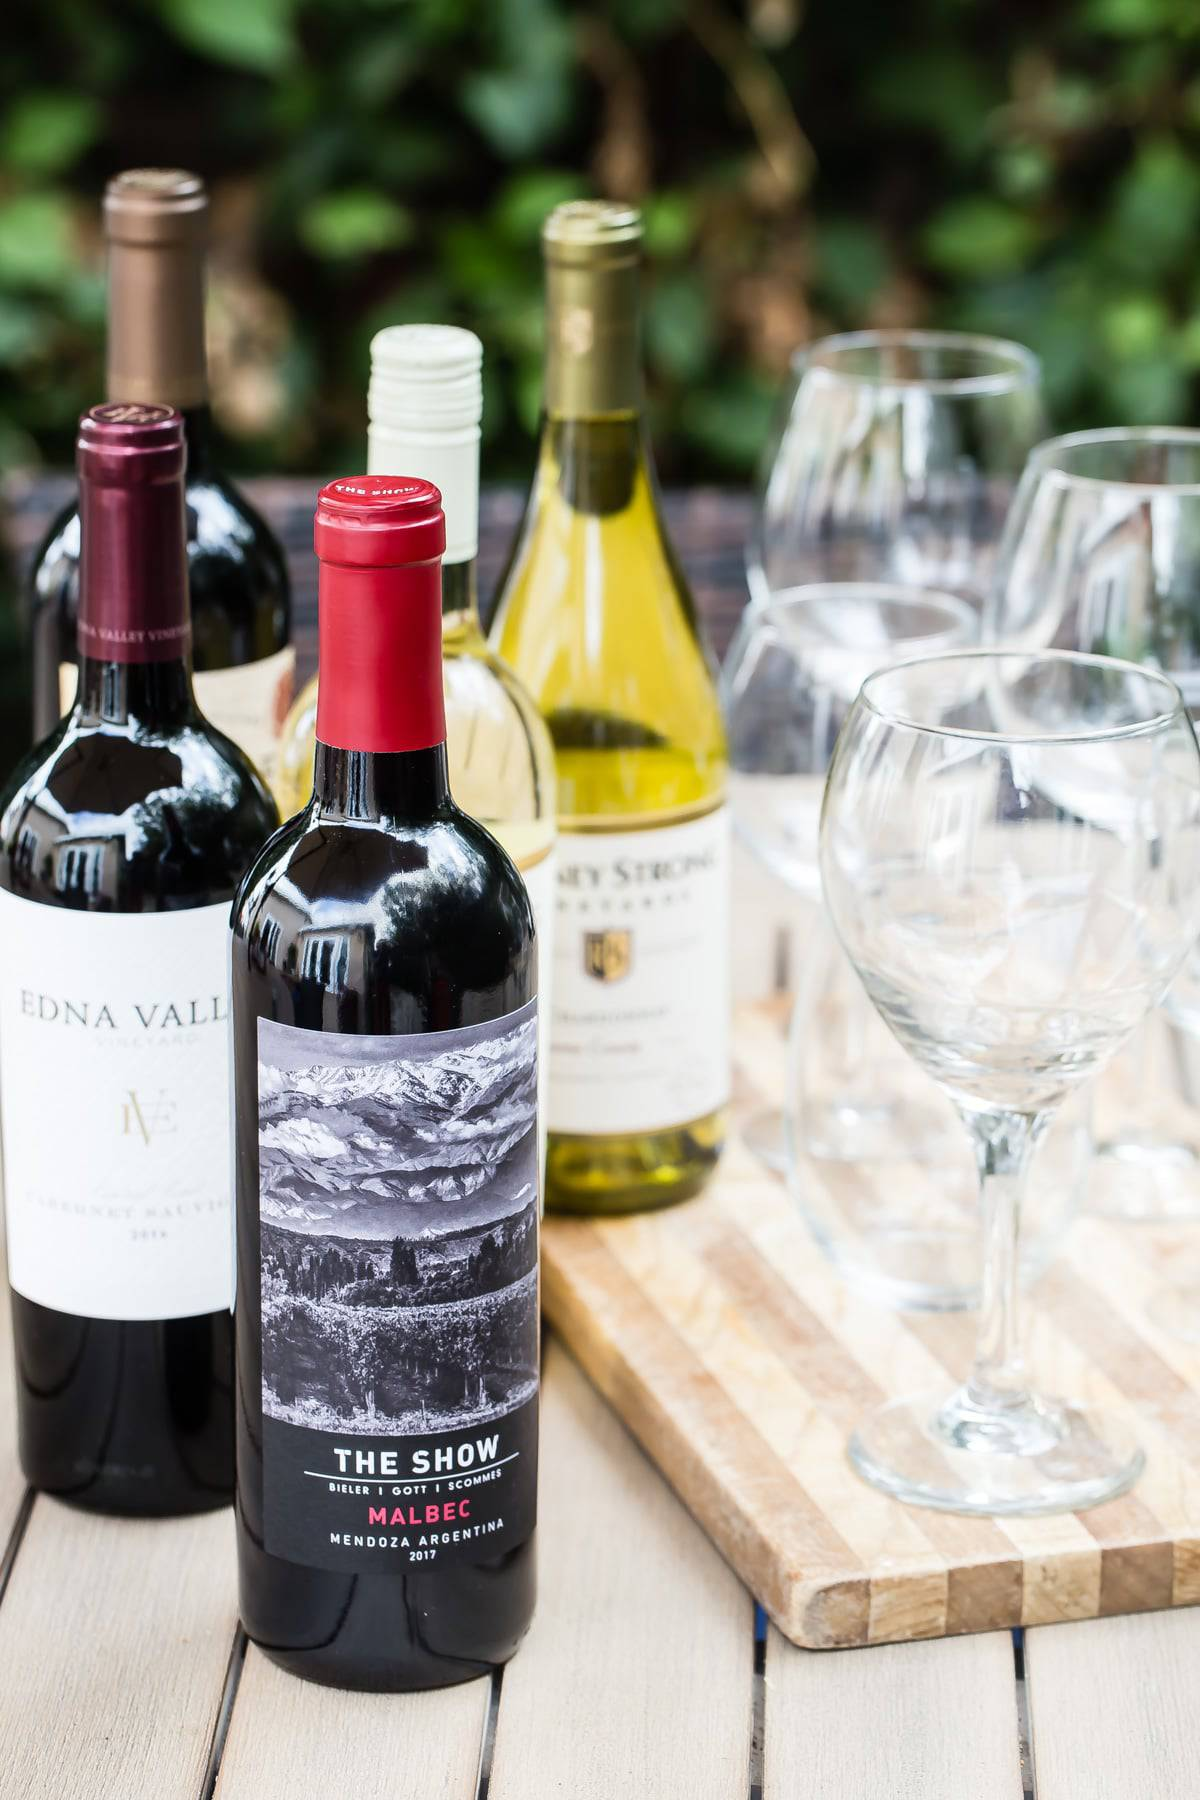 my five awesome wine choices